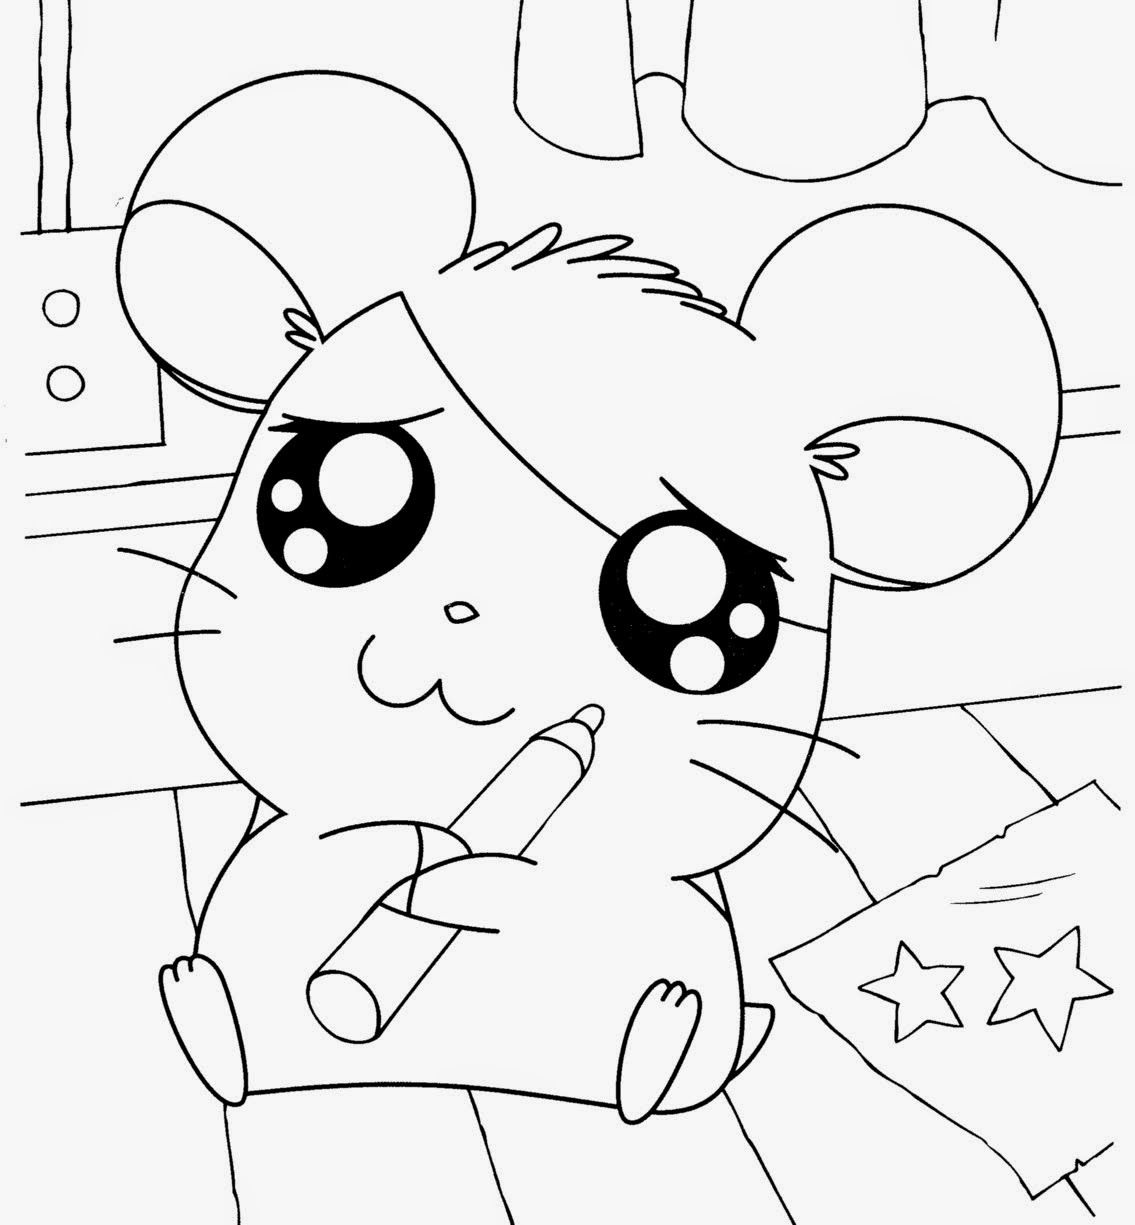 14+ Cute hamster coloring pages ideas in 2021